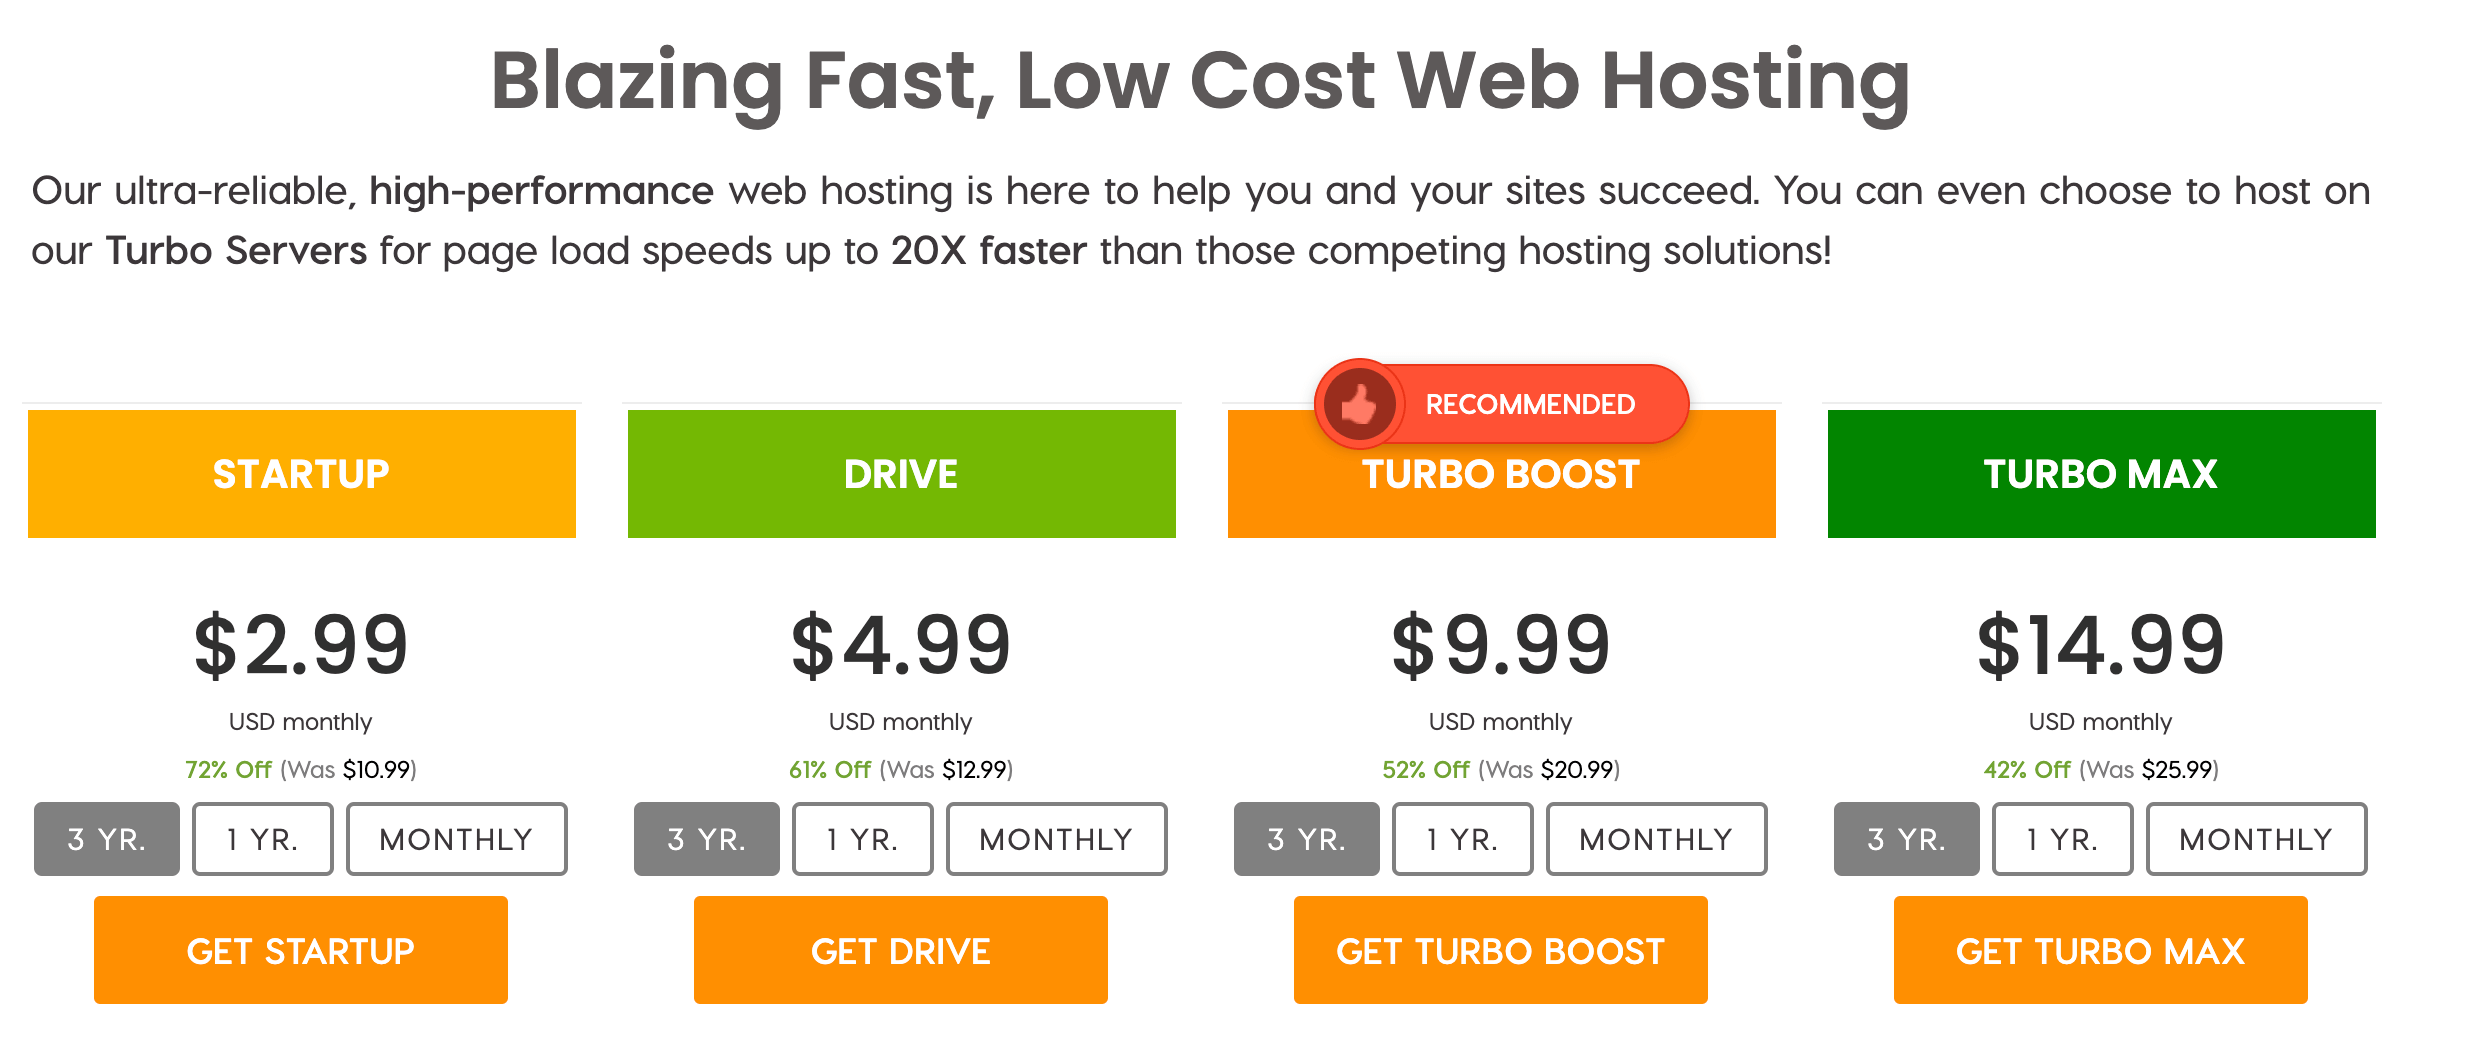 A2's shared hosting plans.